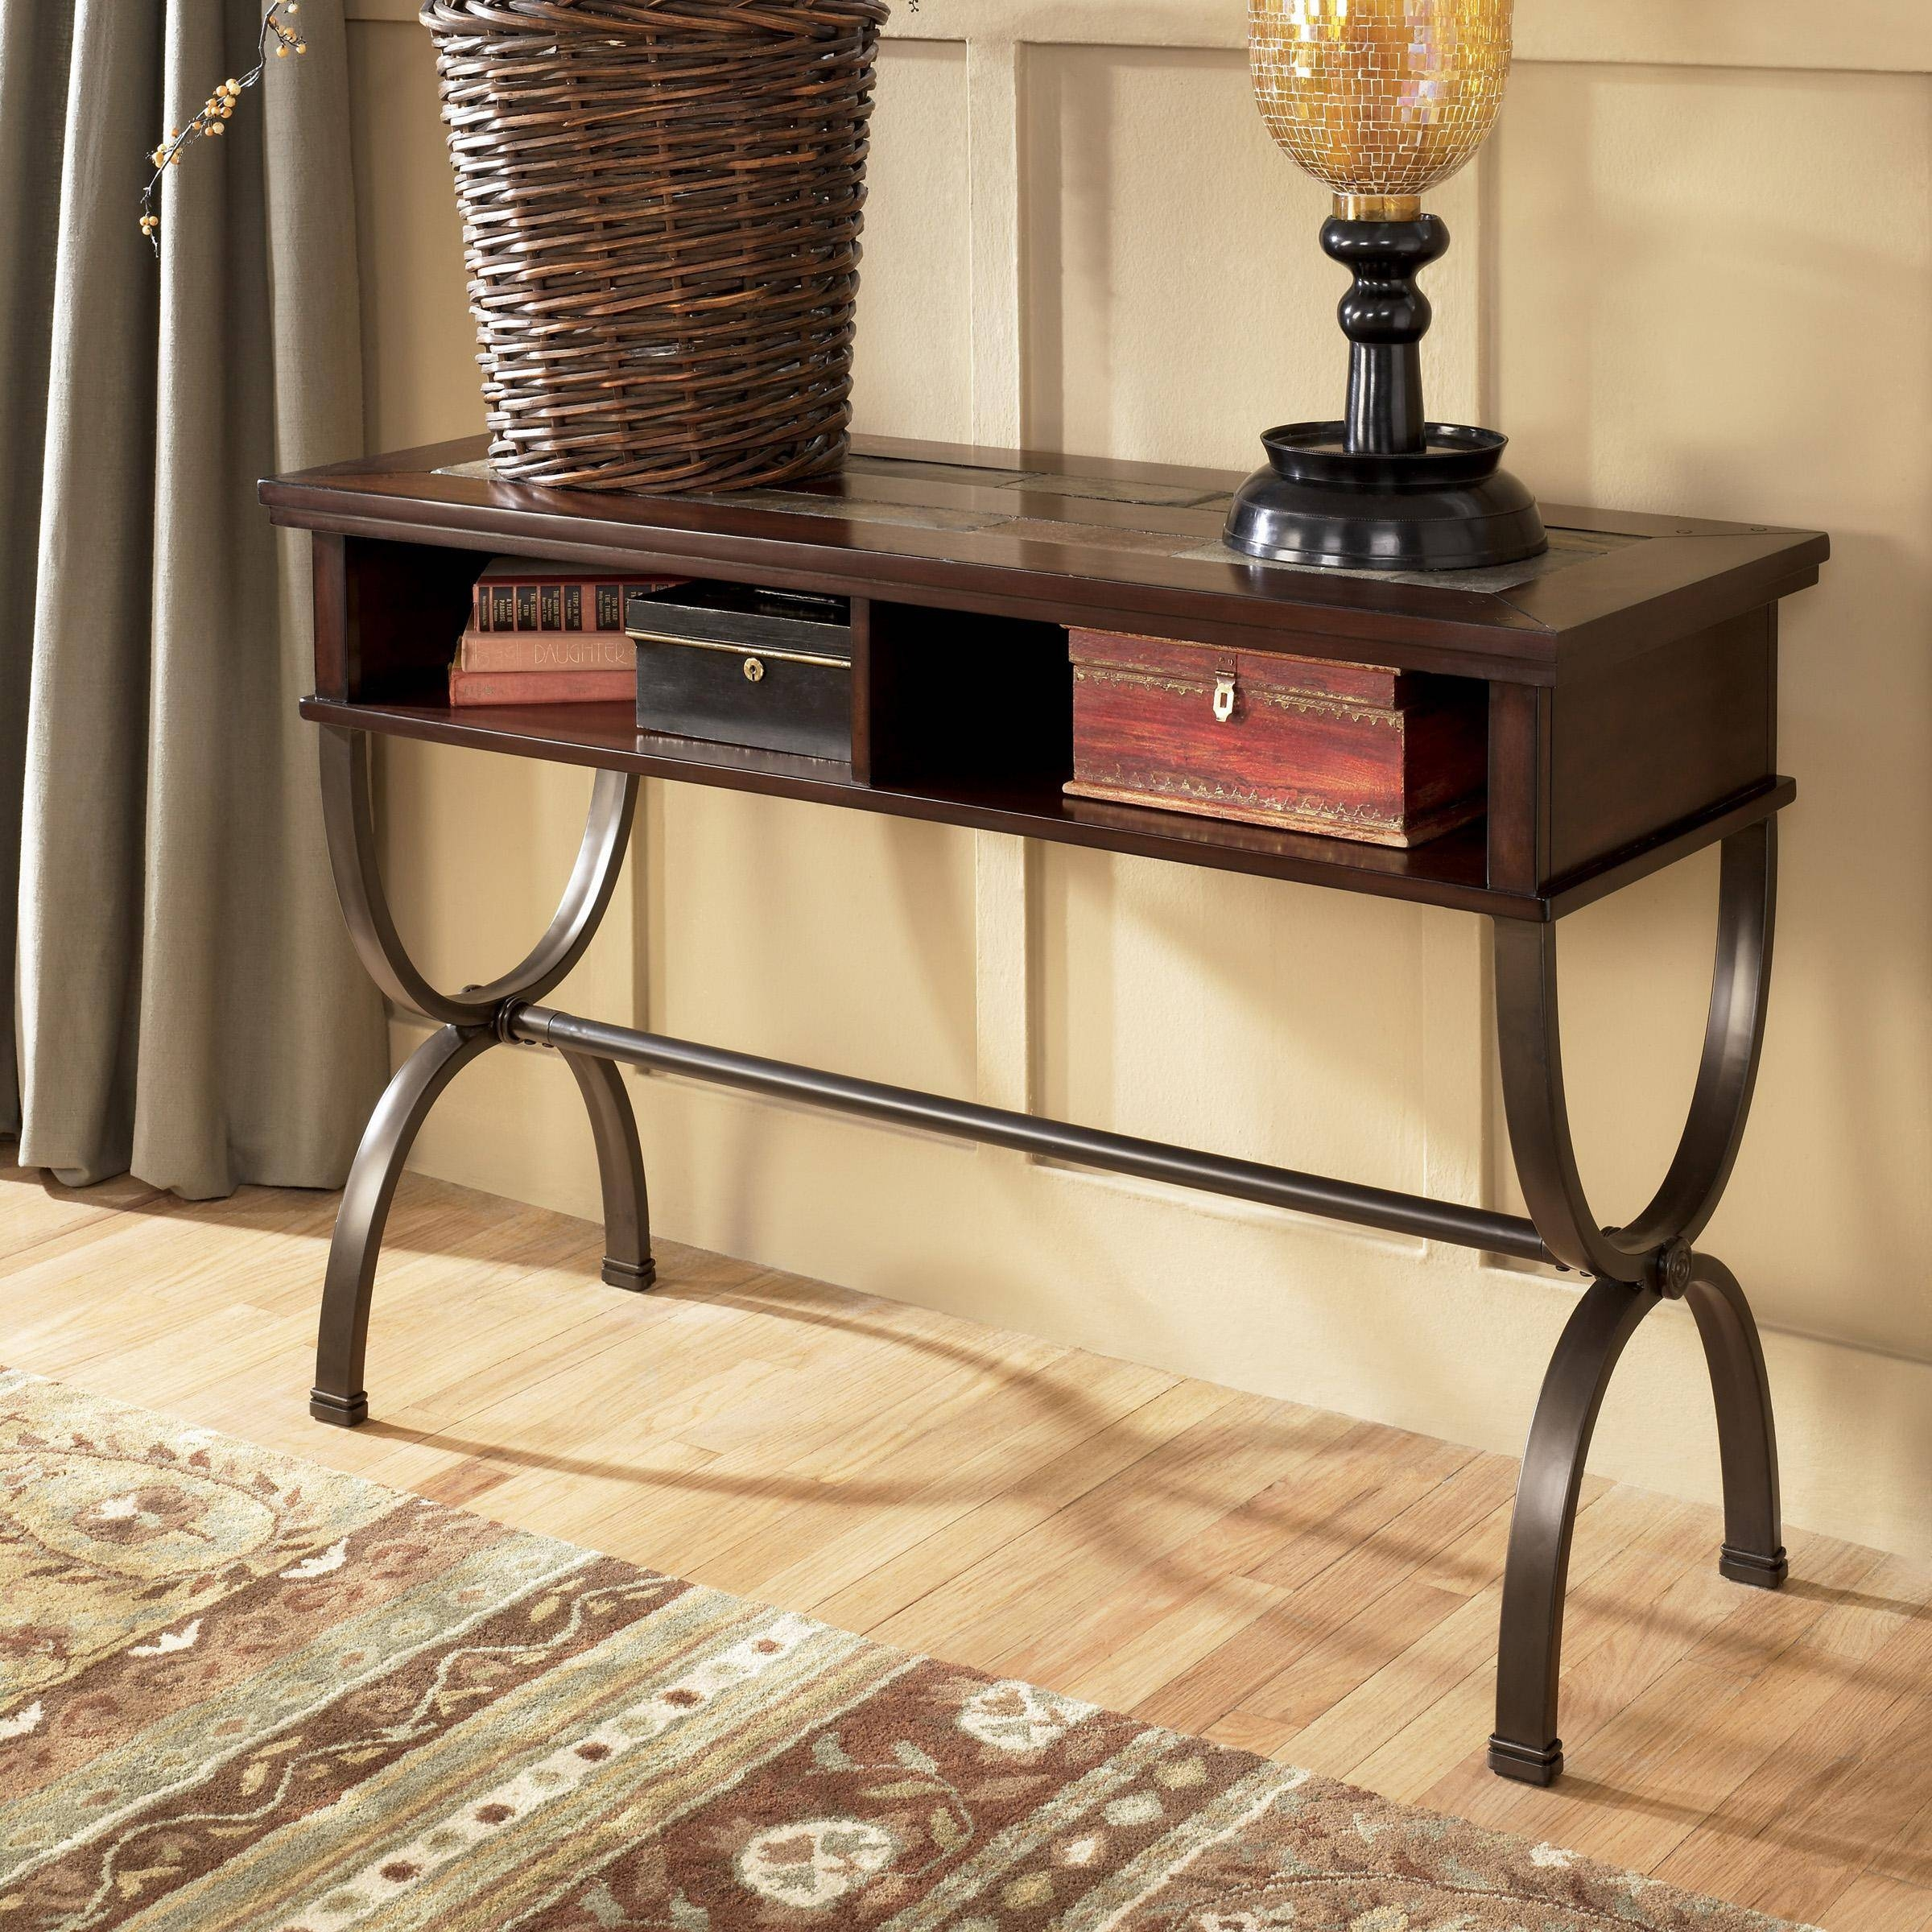 Sofa/console Table With Slate Inlay And Metal Basesignature with regard to Slate Sofa Tables (Image 14 of 15)